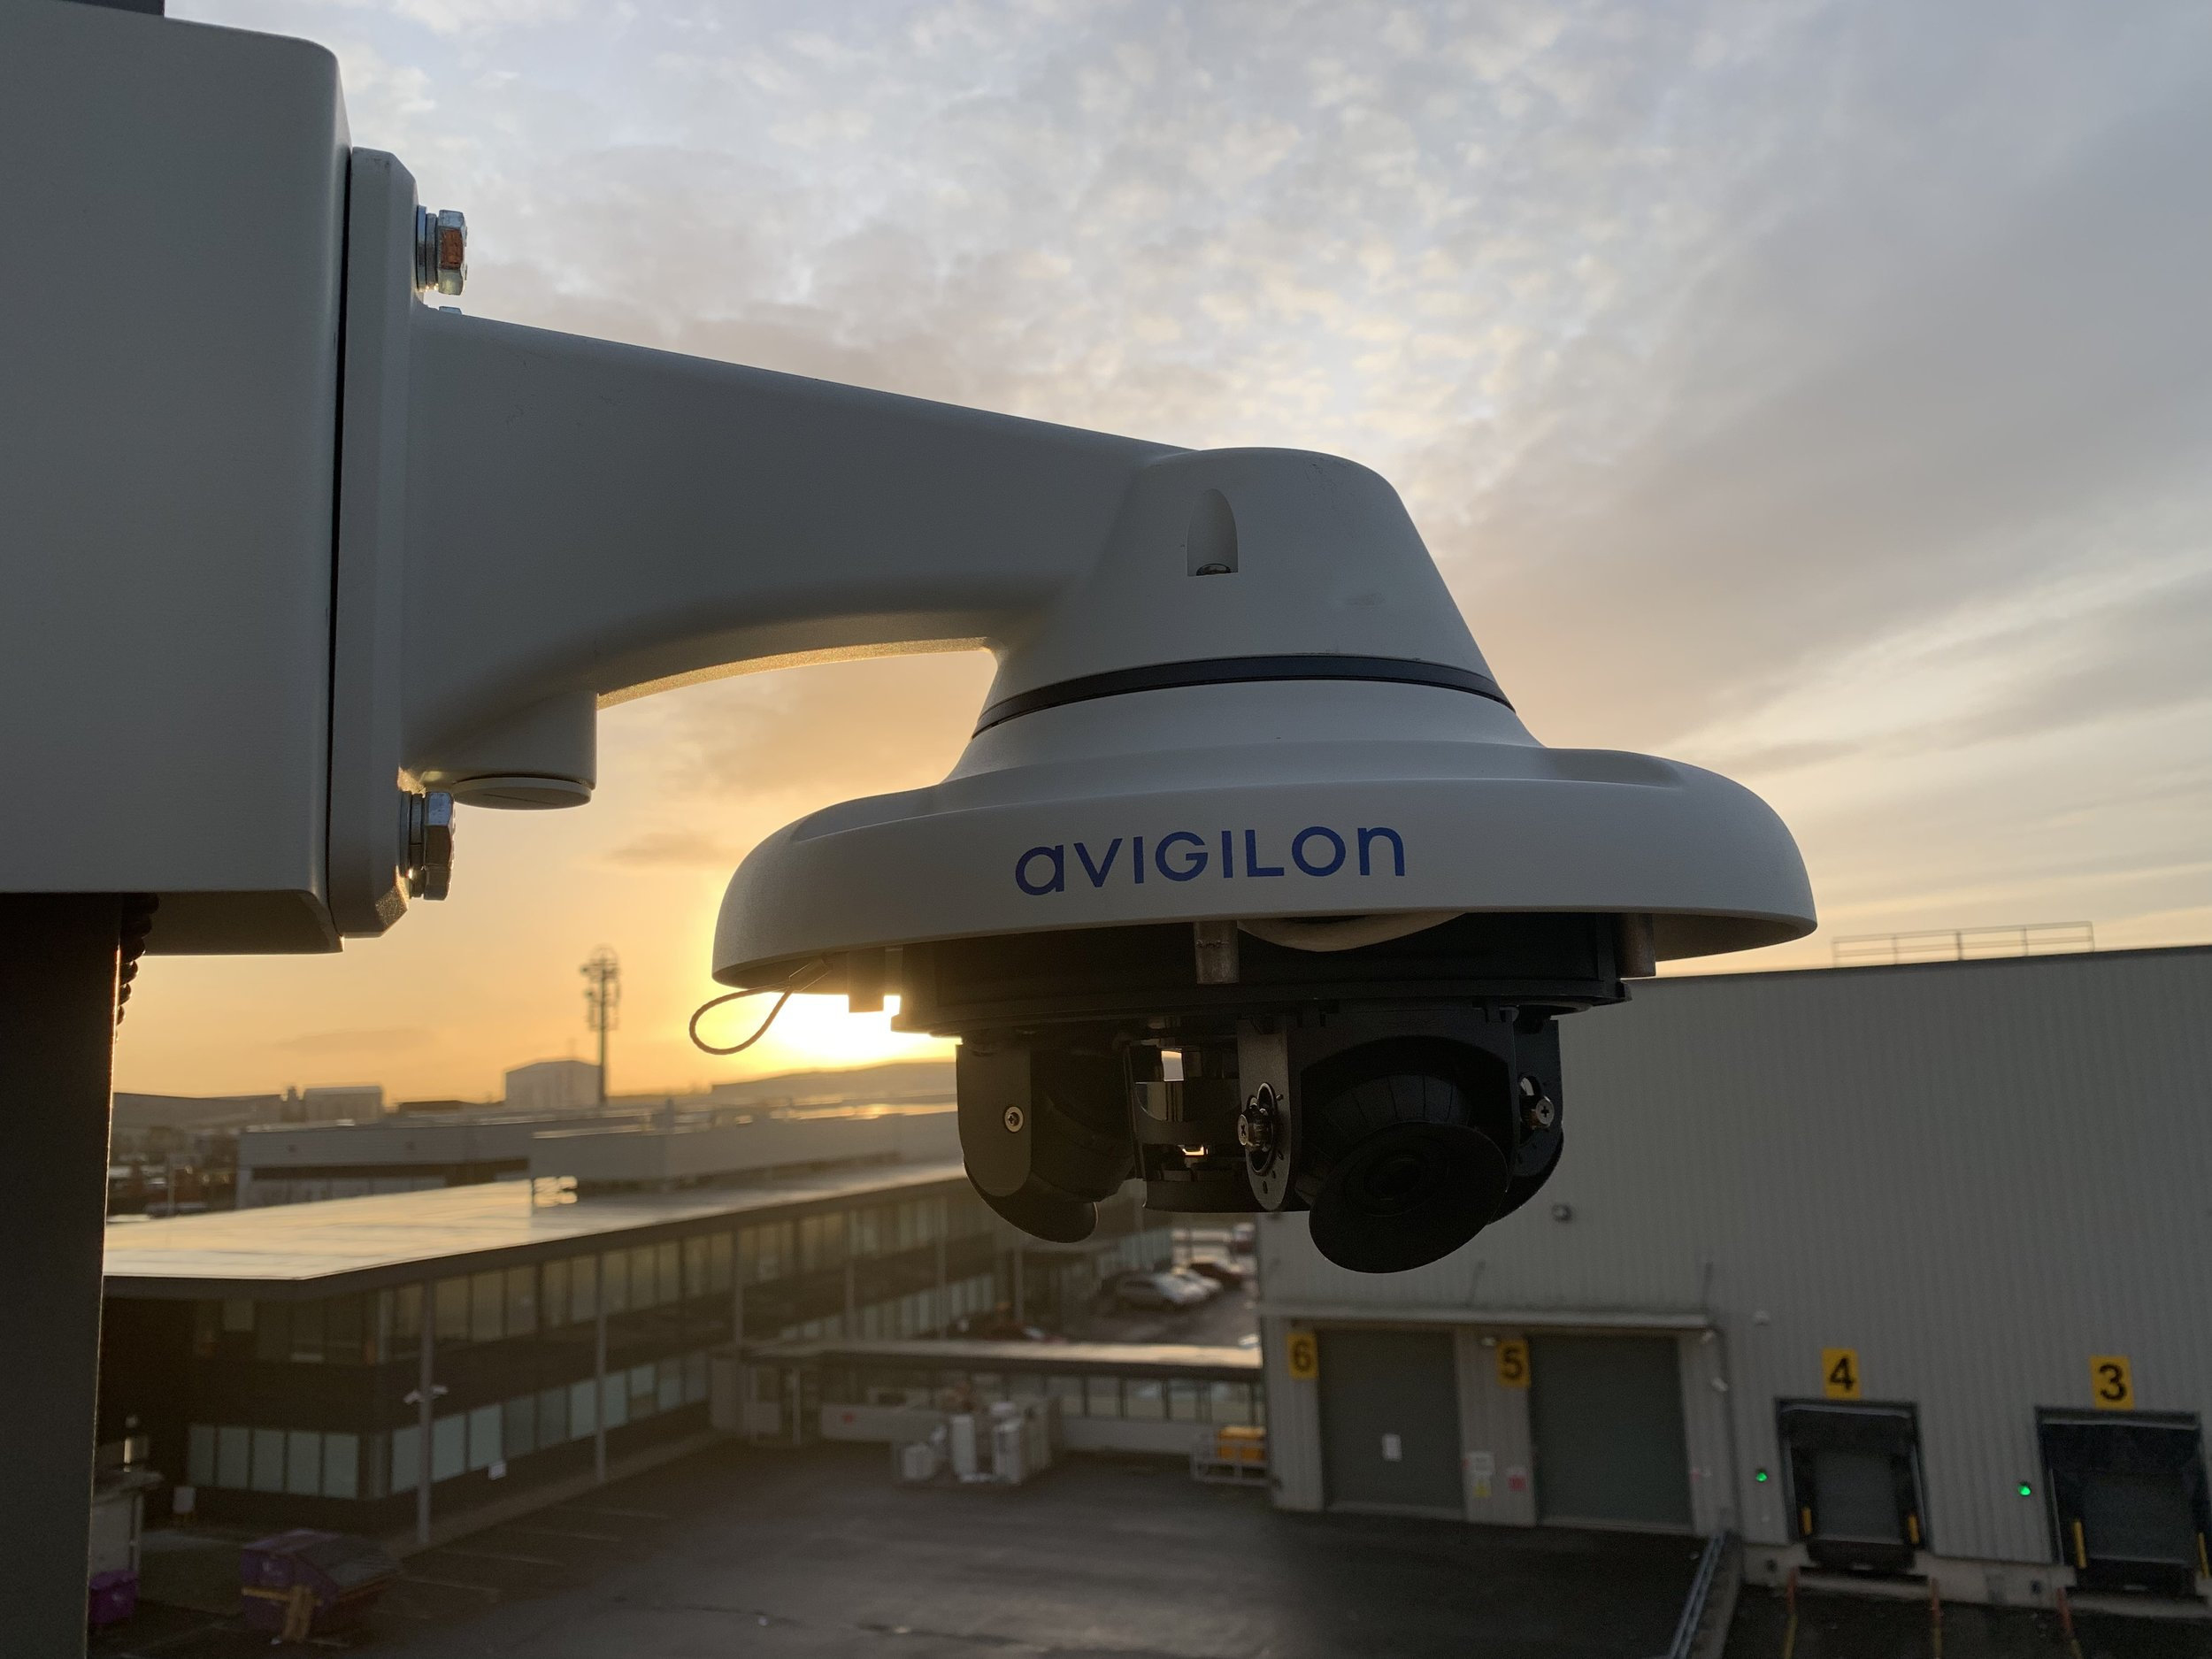 Avigilon analytics installed by Usee.ie CCTV